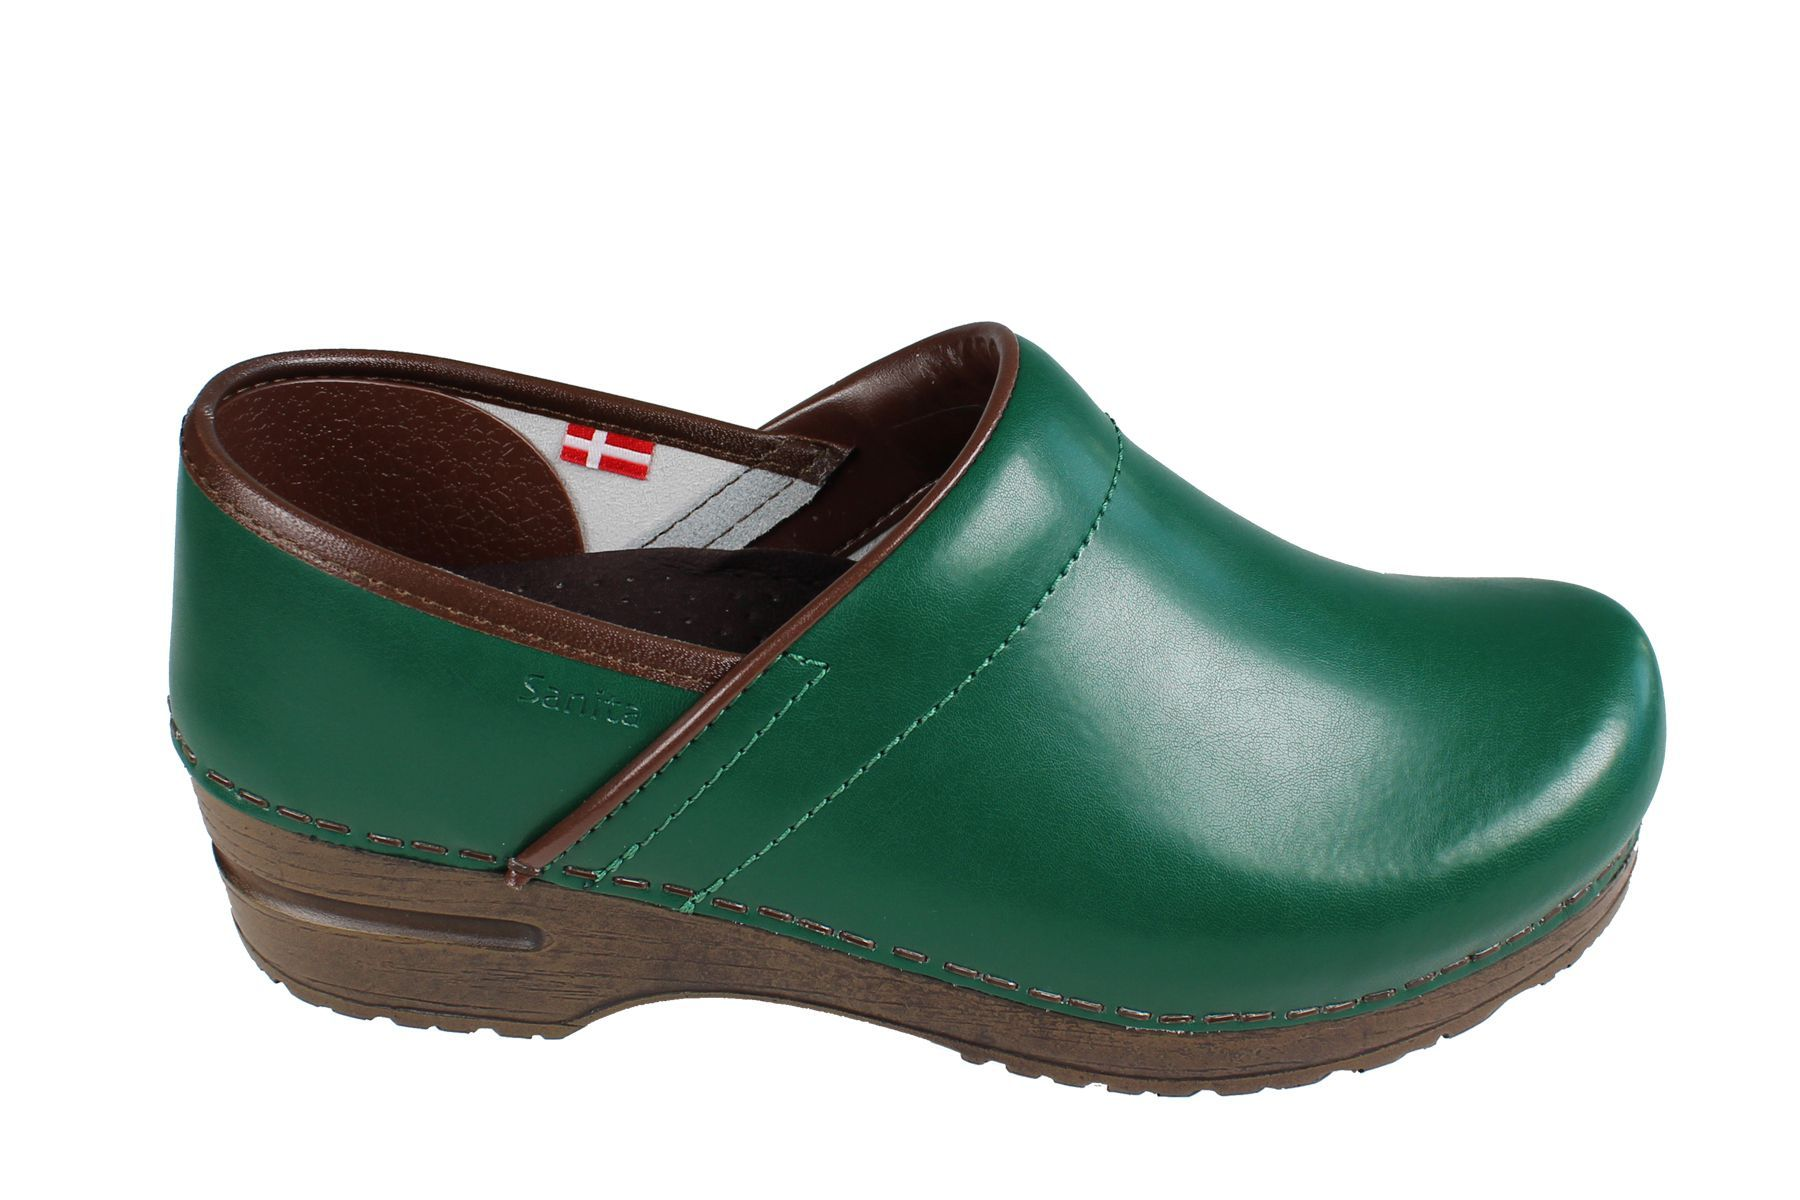 Sanita Izabella Clog in Green